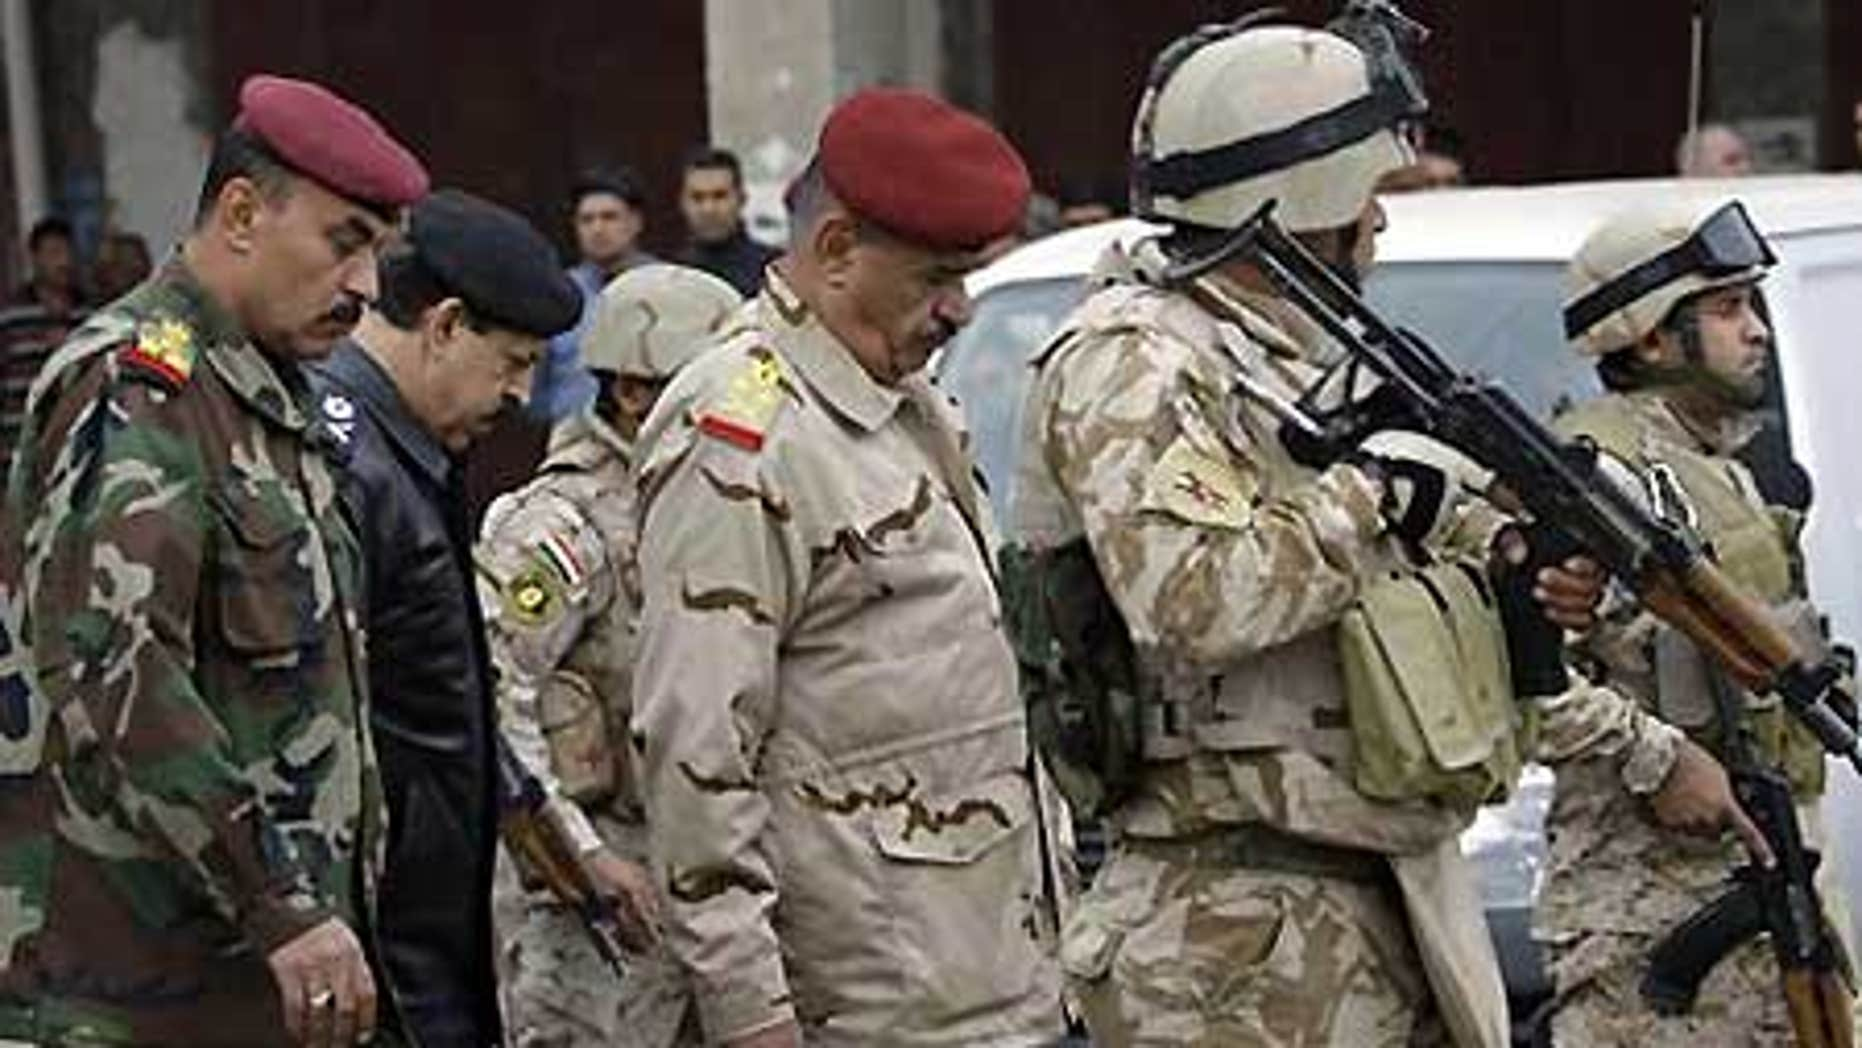 Dec. 8: Gen. Abboud Qanbar, center, escorted by bodyguards, inspects site of a bomb attack near the new Finance Ministry building in Baghdad, Iraq.